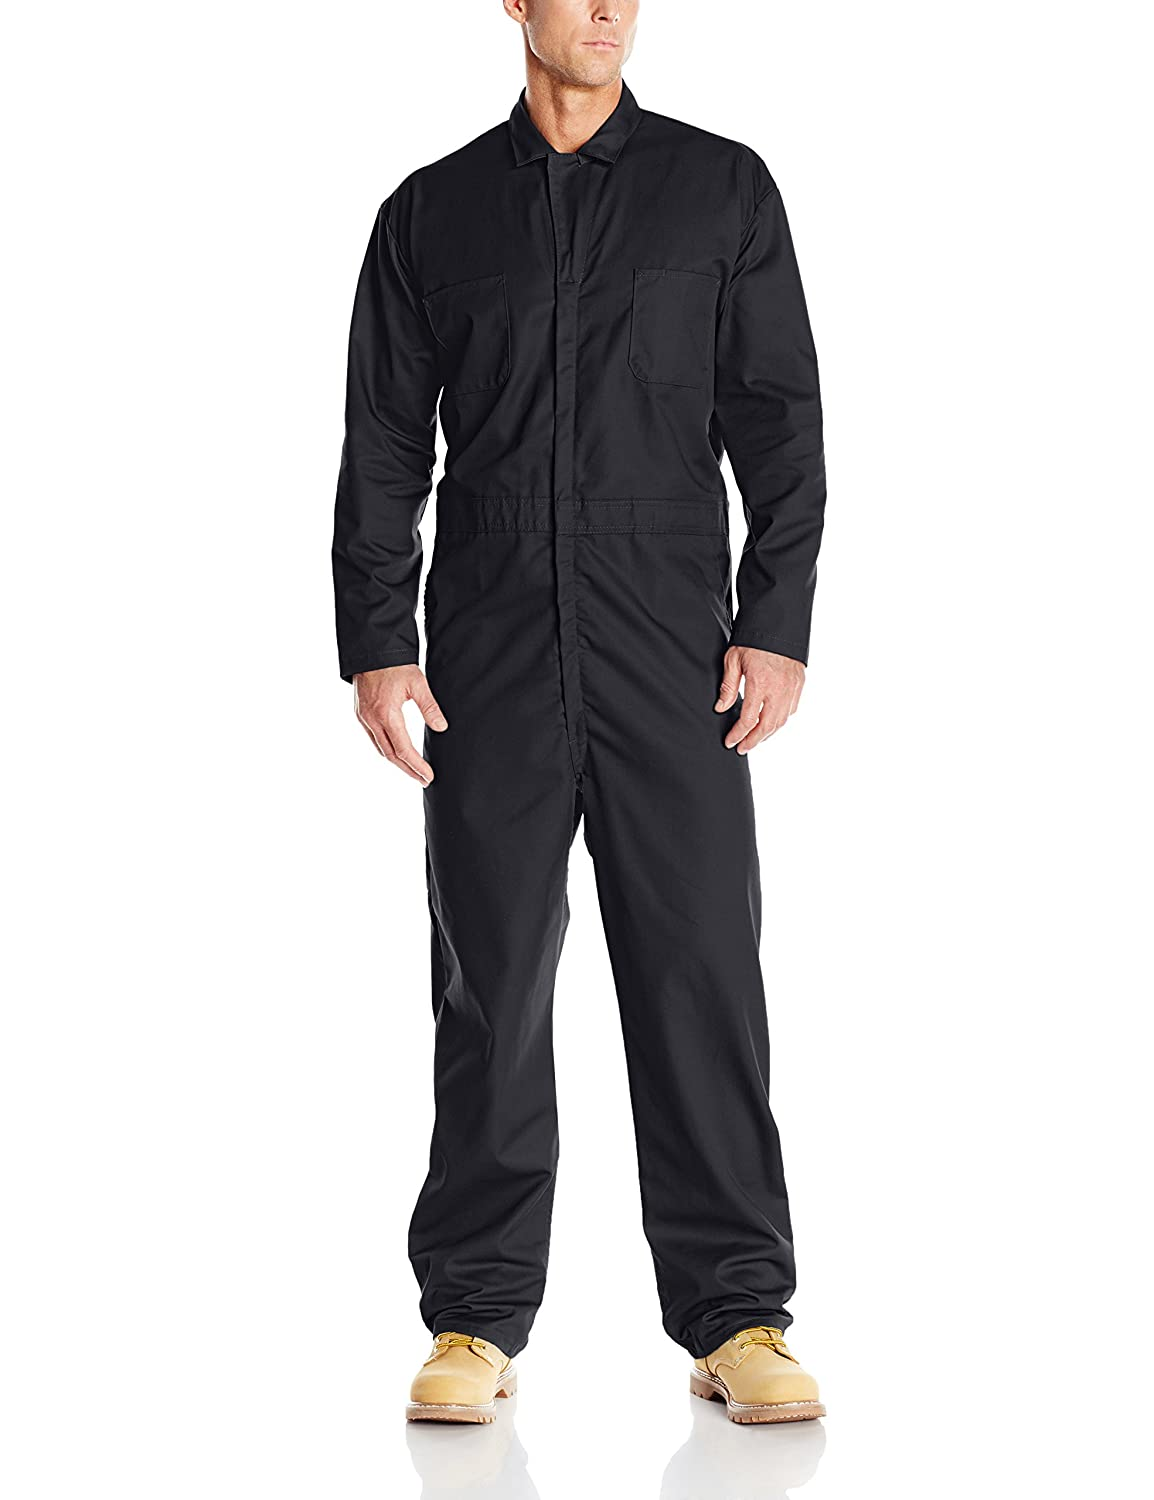 75fb59457 Amazon.com: Red Kap Men's Long Sleeve Twill Action Back Coverall: Clothing